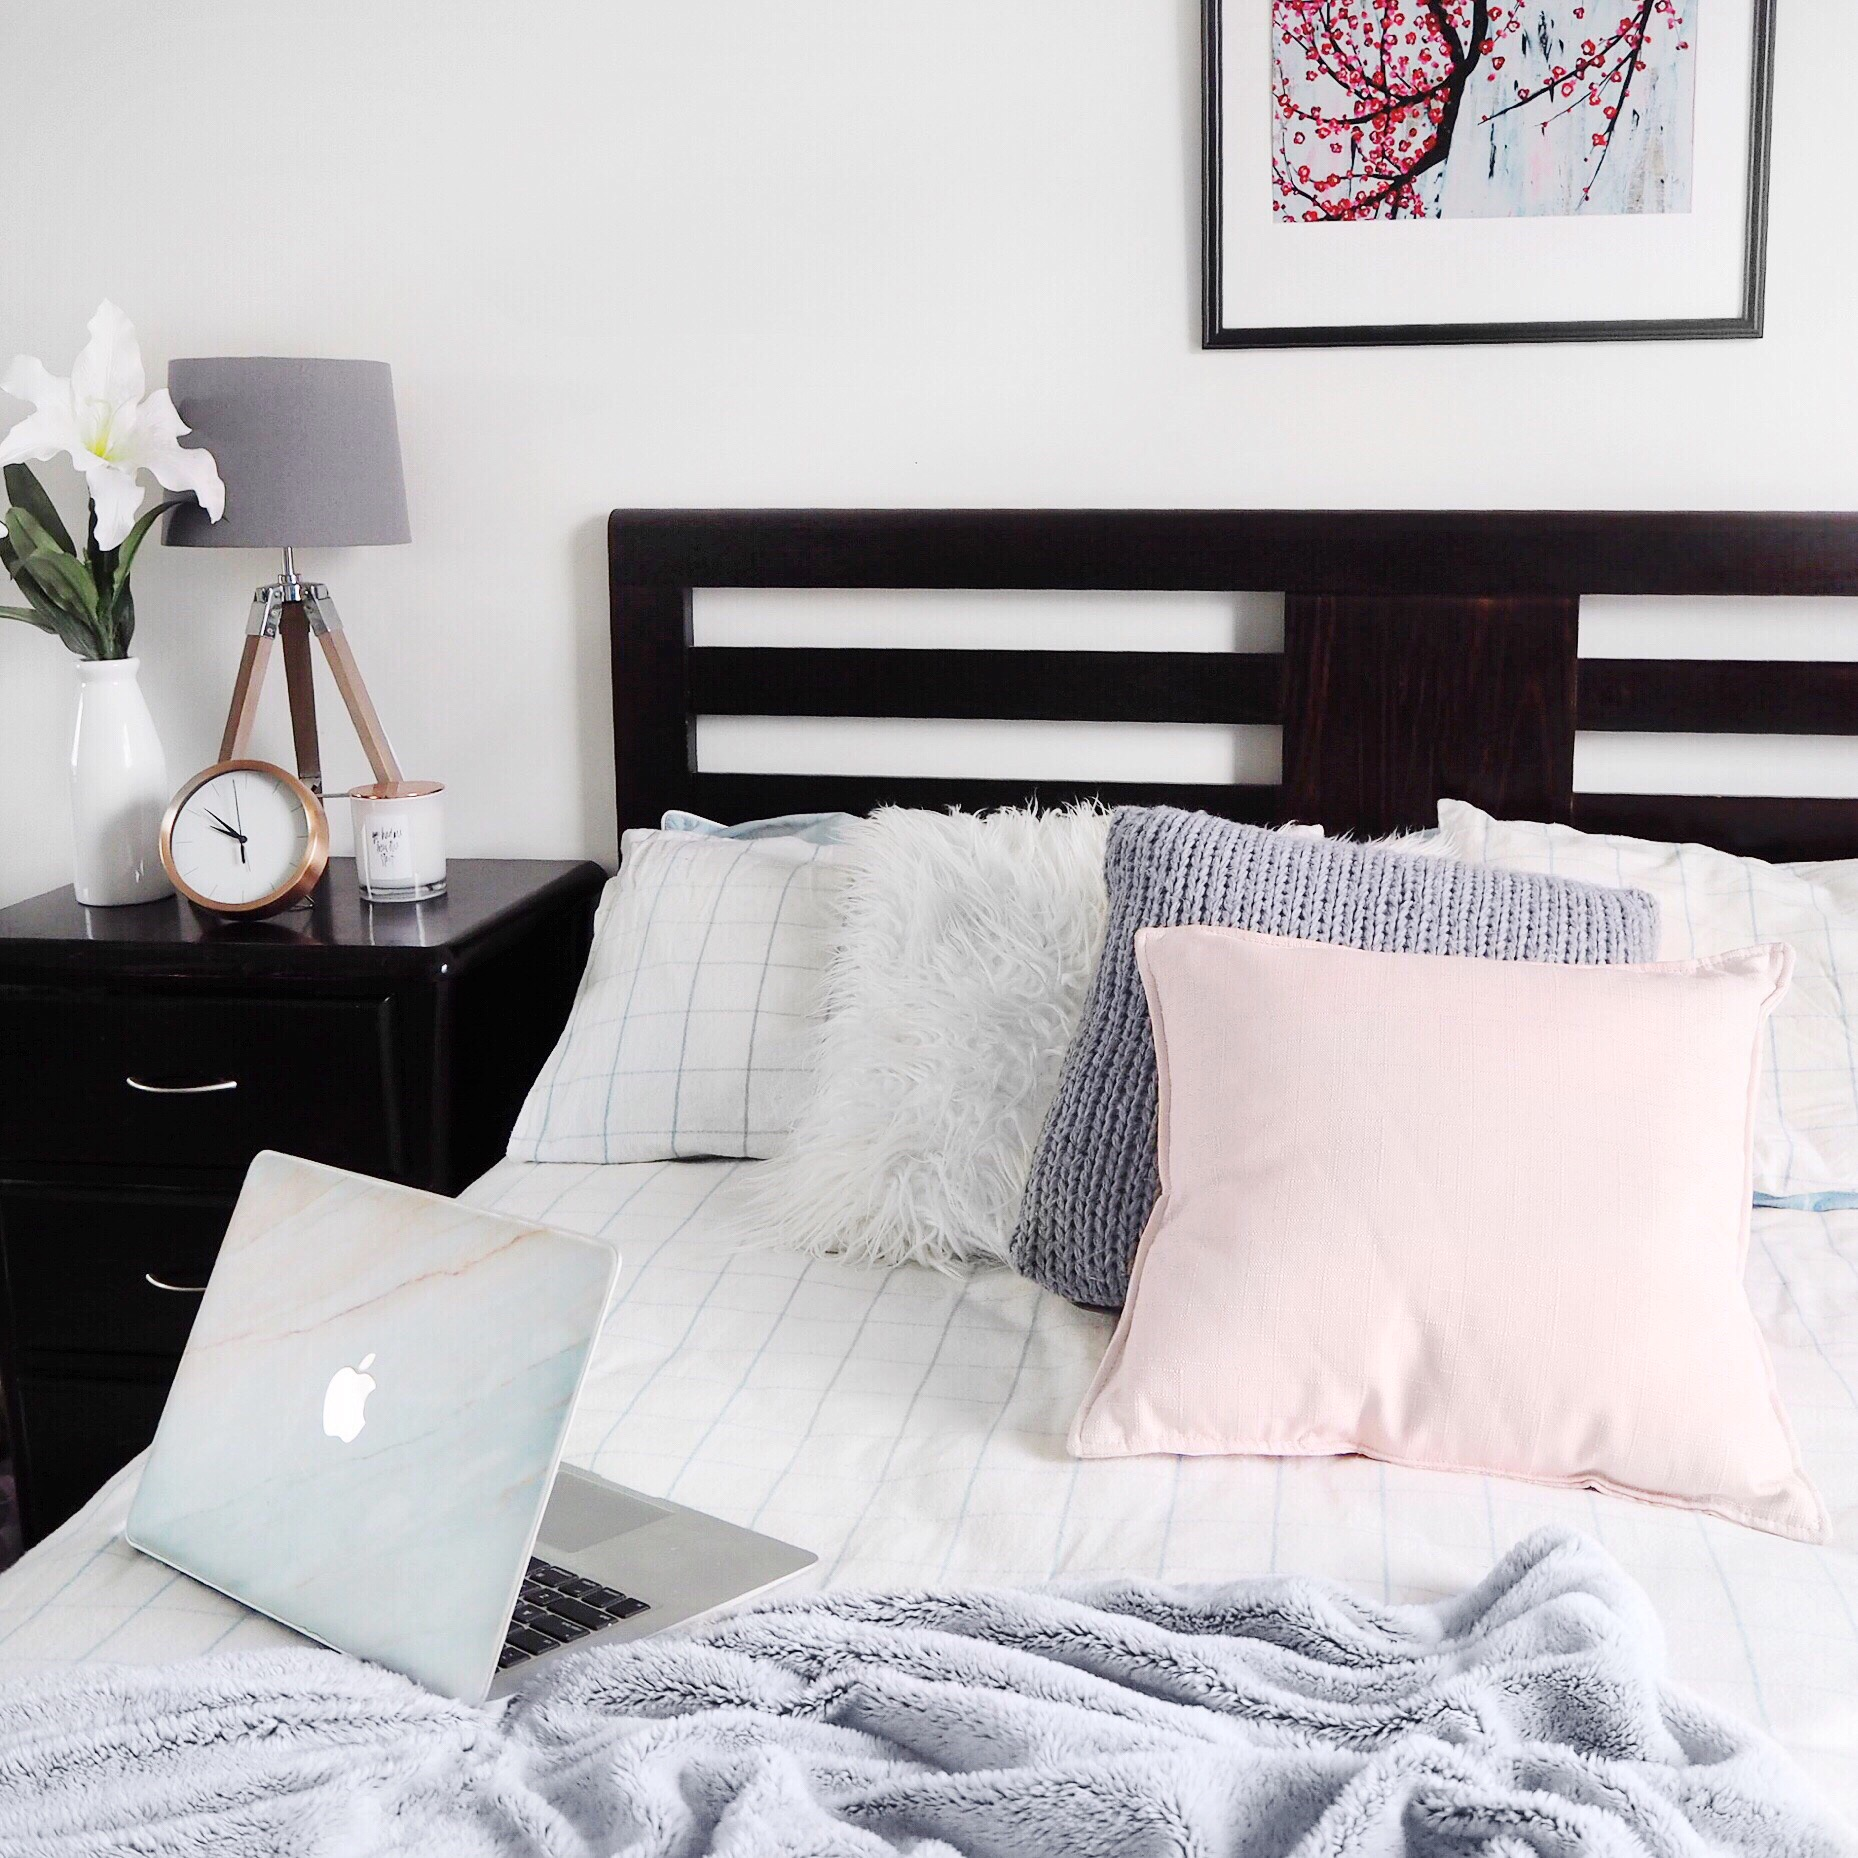 8 Blush Grey Home Decor Items For The Bedroom Lee Rachel